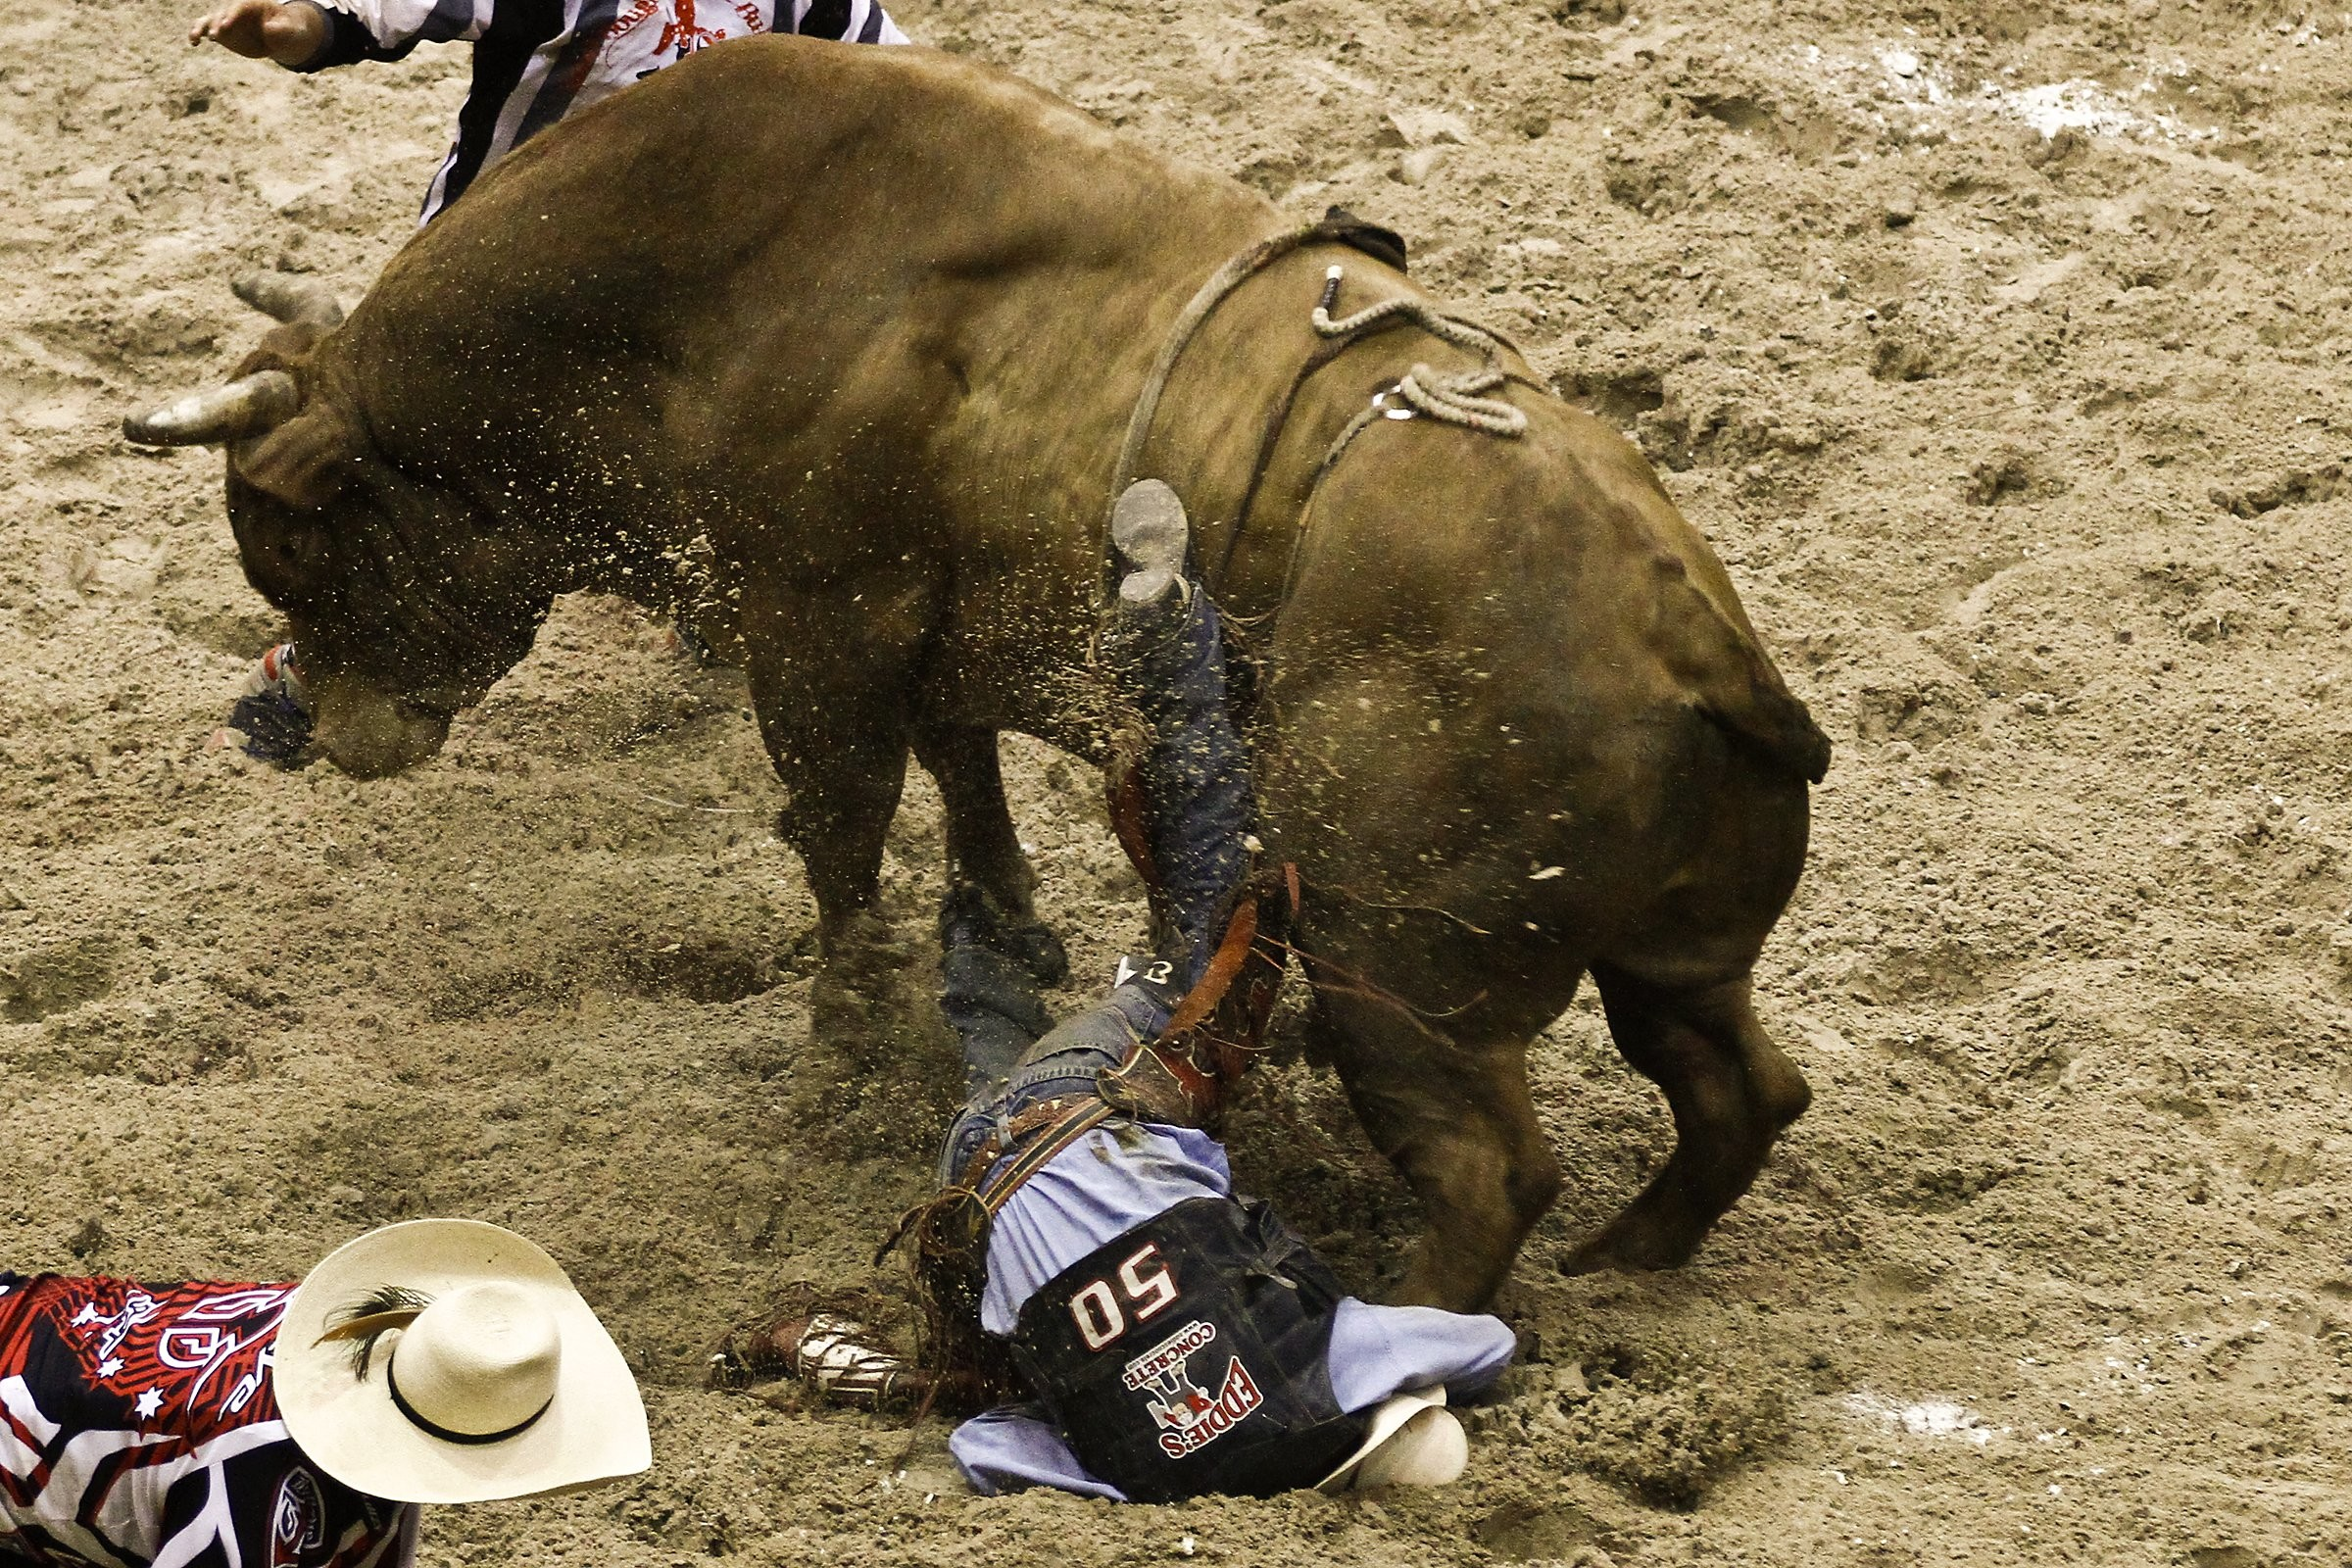 Bull riding bullrider rodeo western cowboy extreme cow (27 .